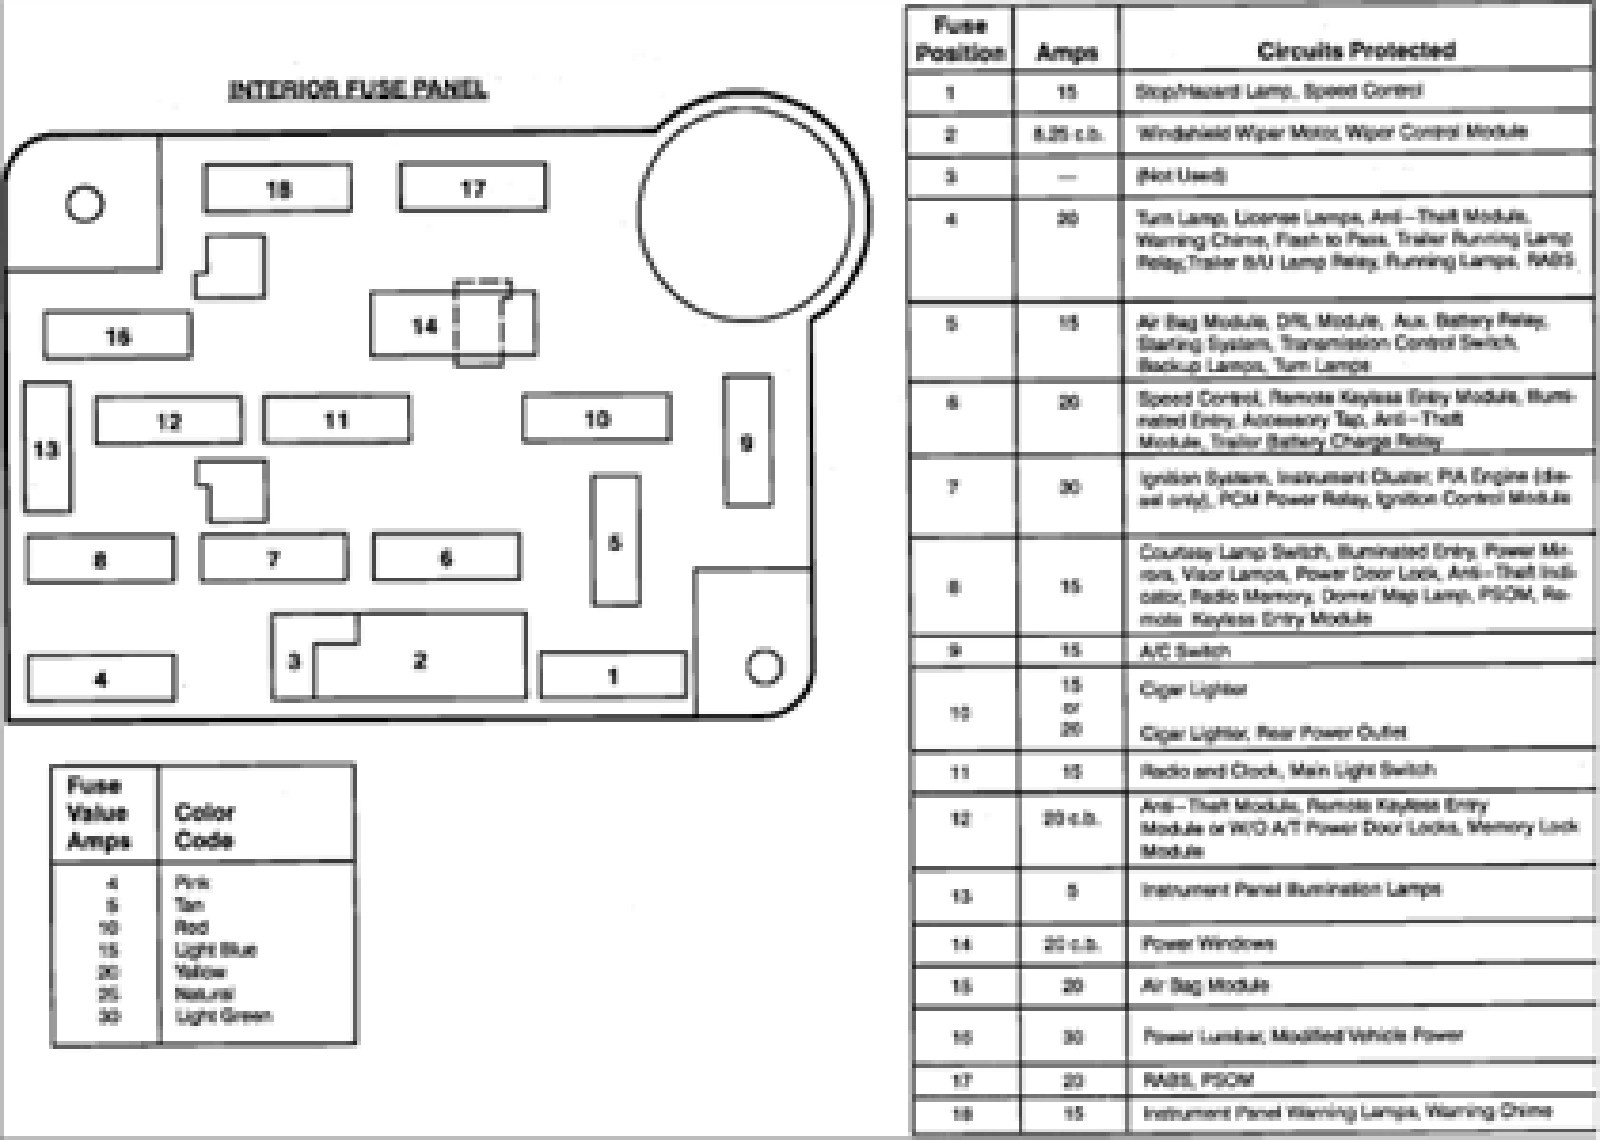 hight resolution of 97 taurus fuse diagram wiring diagram centre1996 taurus fuse box wiring diagram97 ford taurus fuse box